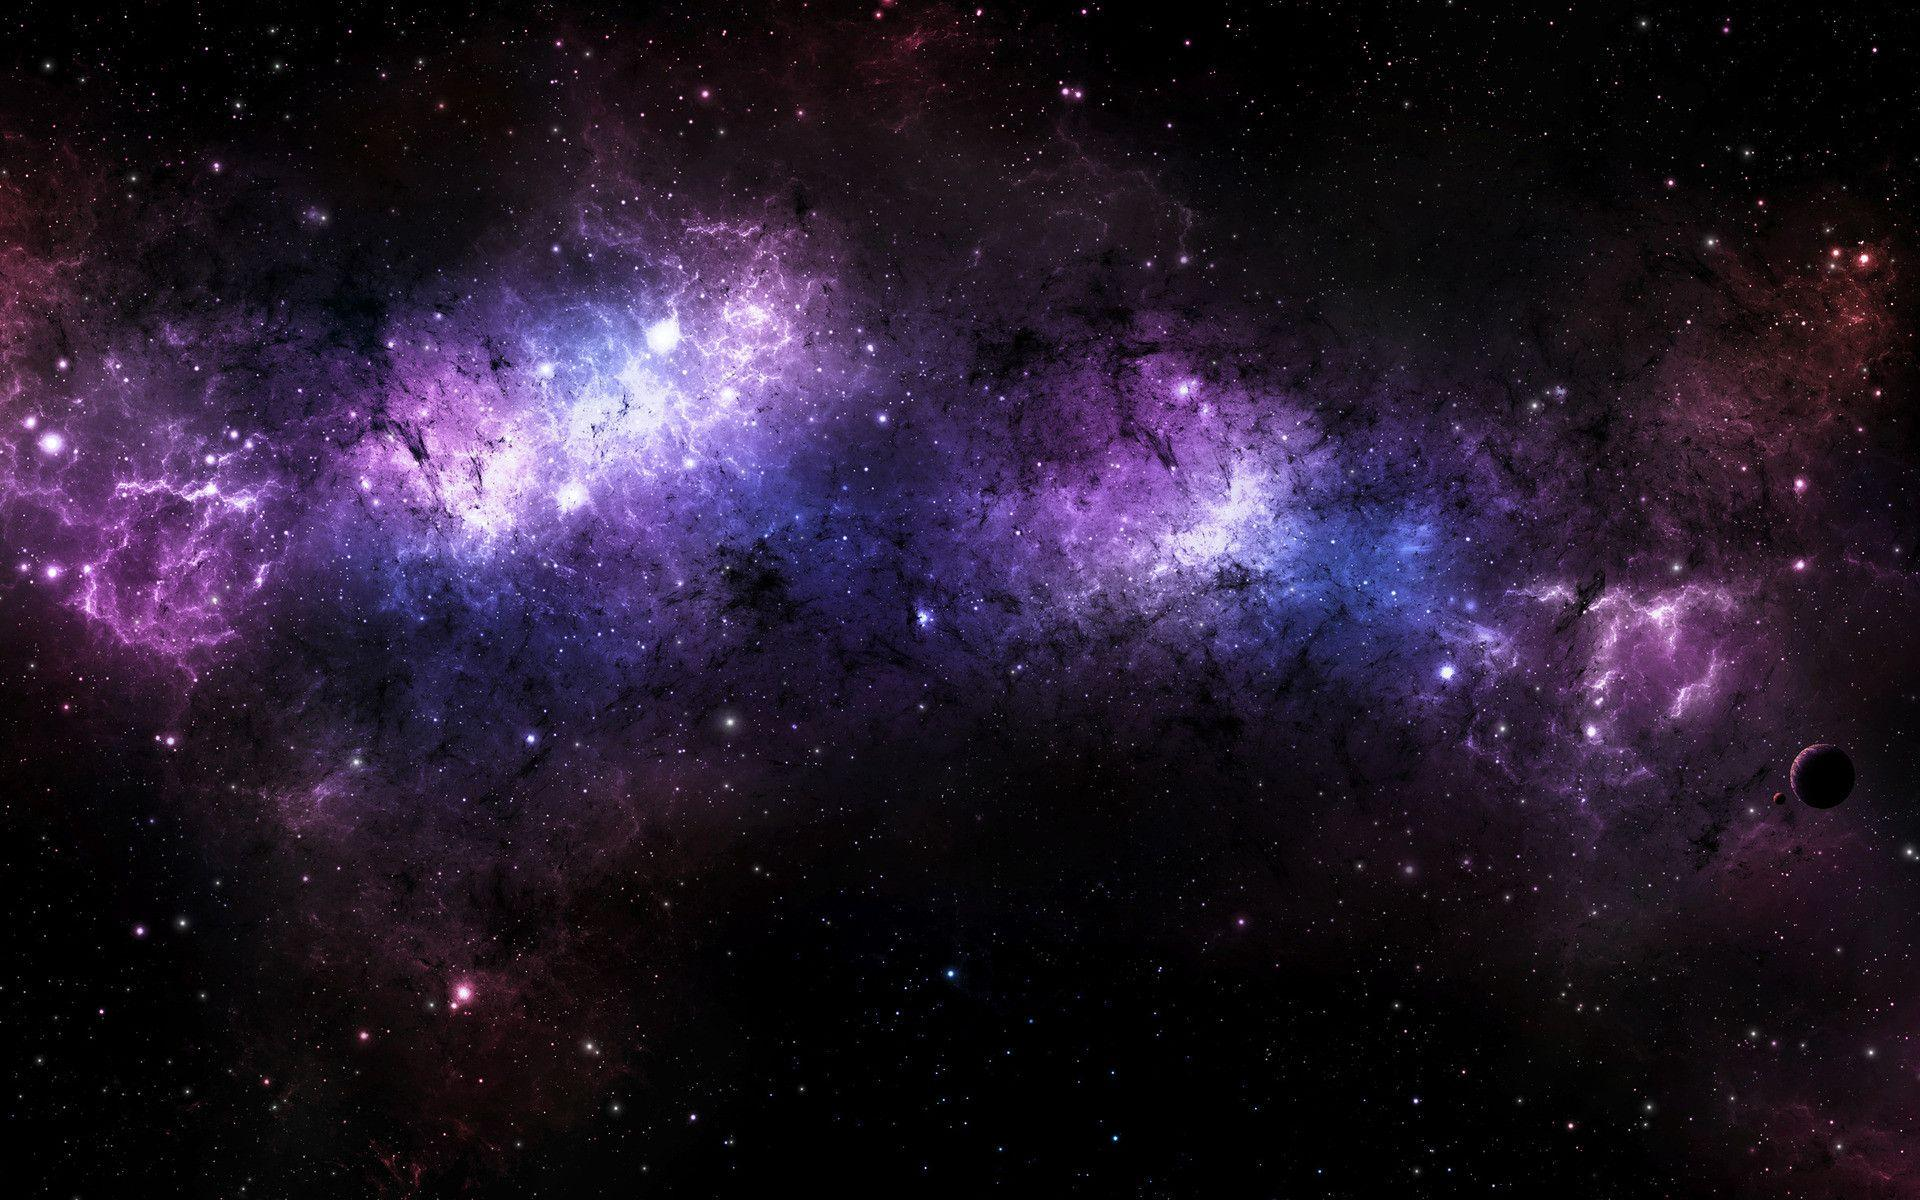 space desktop wallpaper backgrounds - photo #4